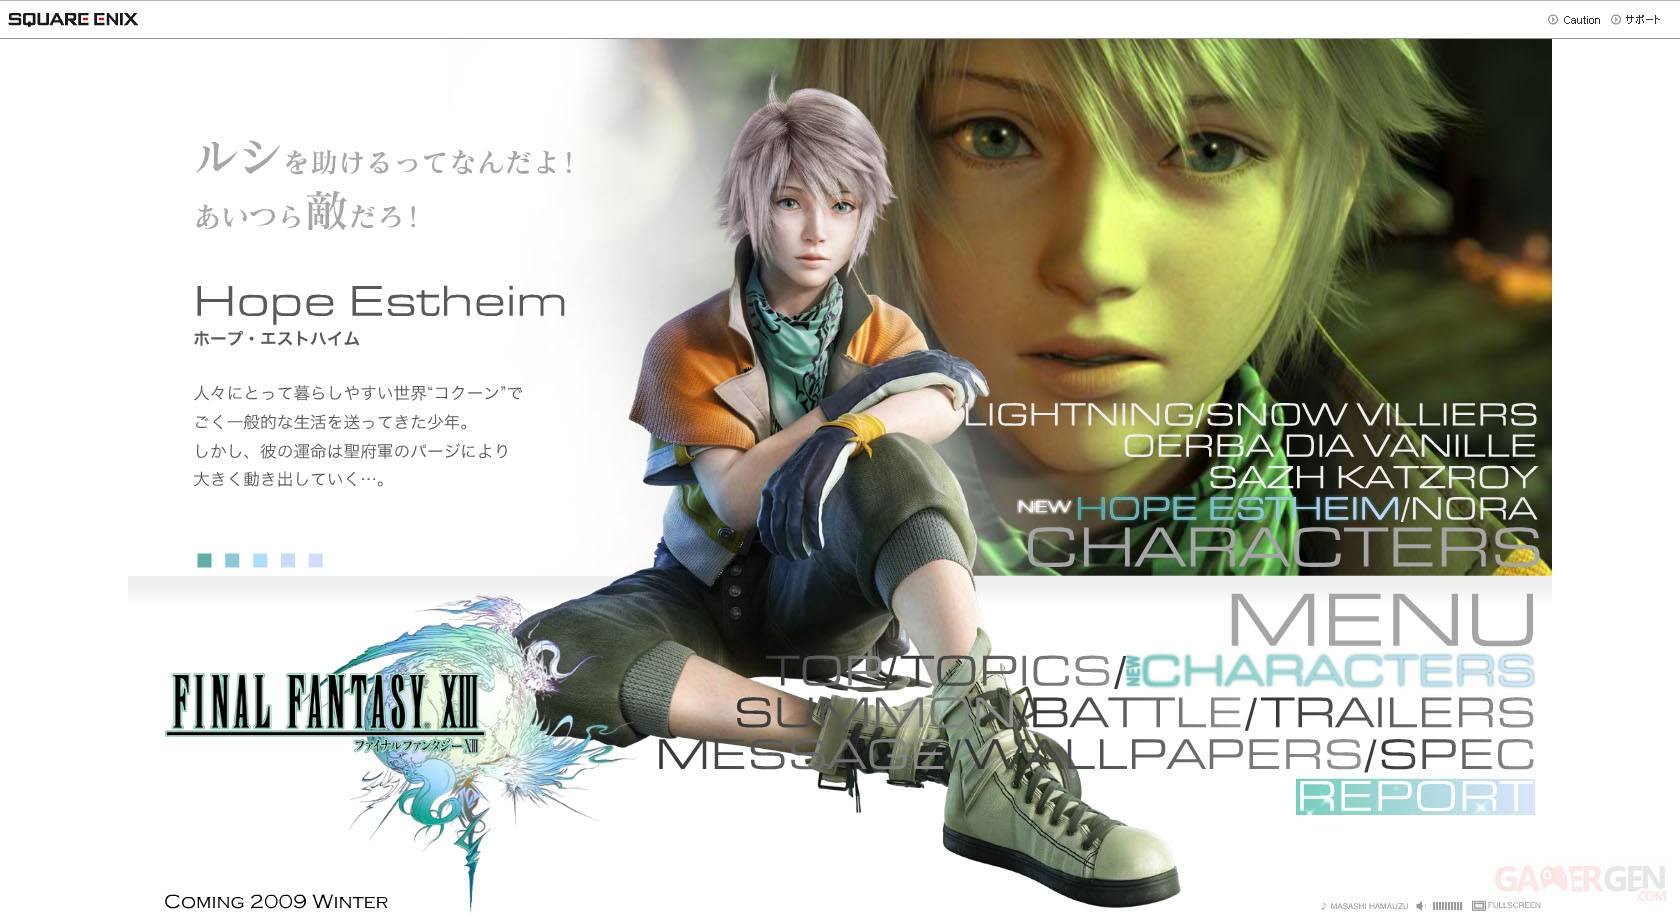 Final_Fantasy_XIII_screens hope1